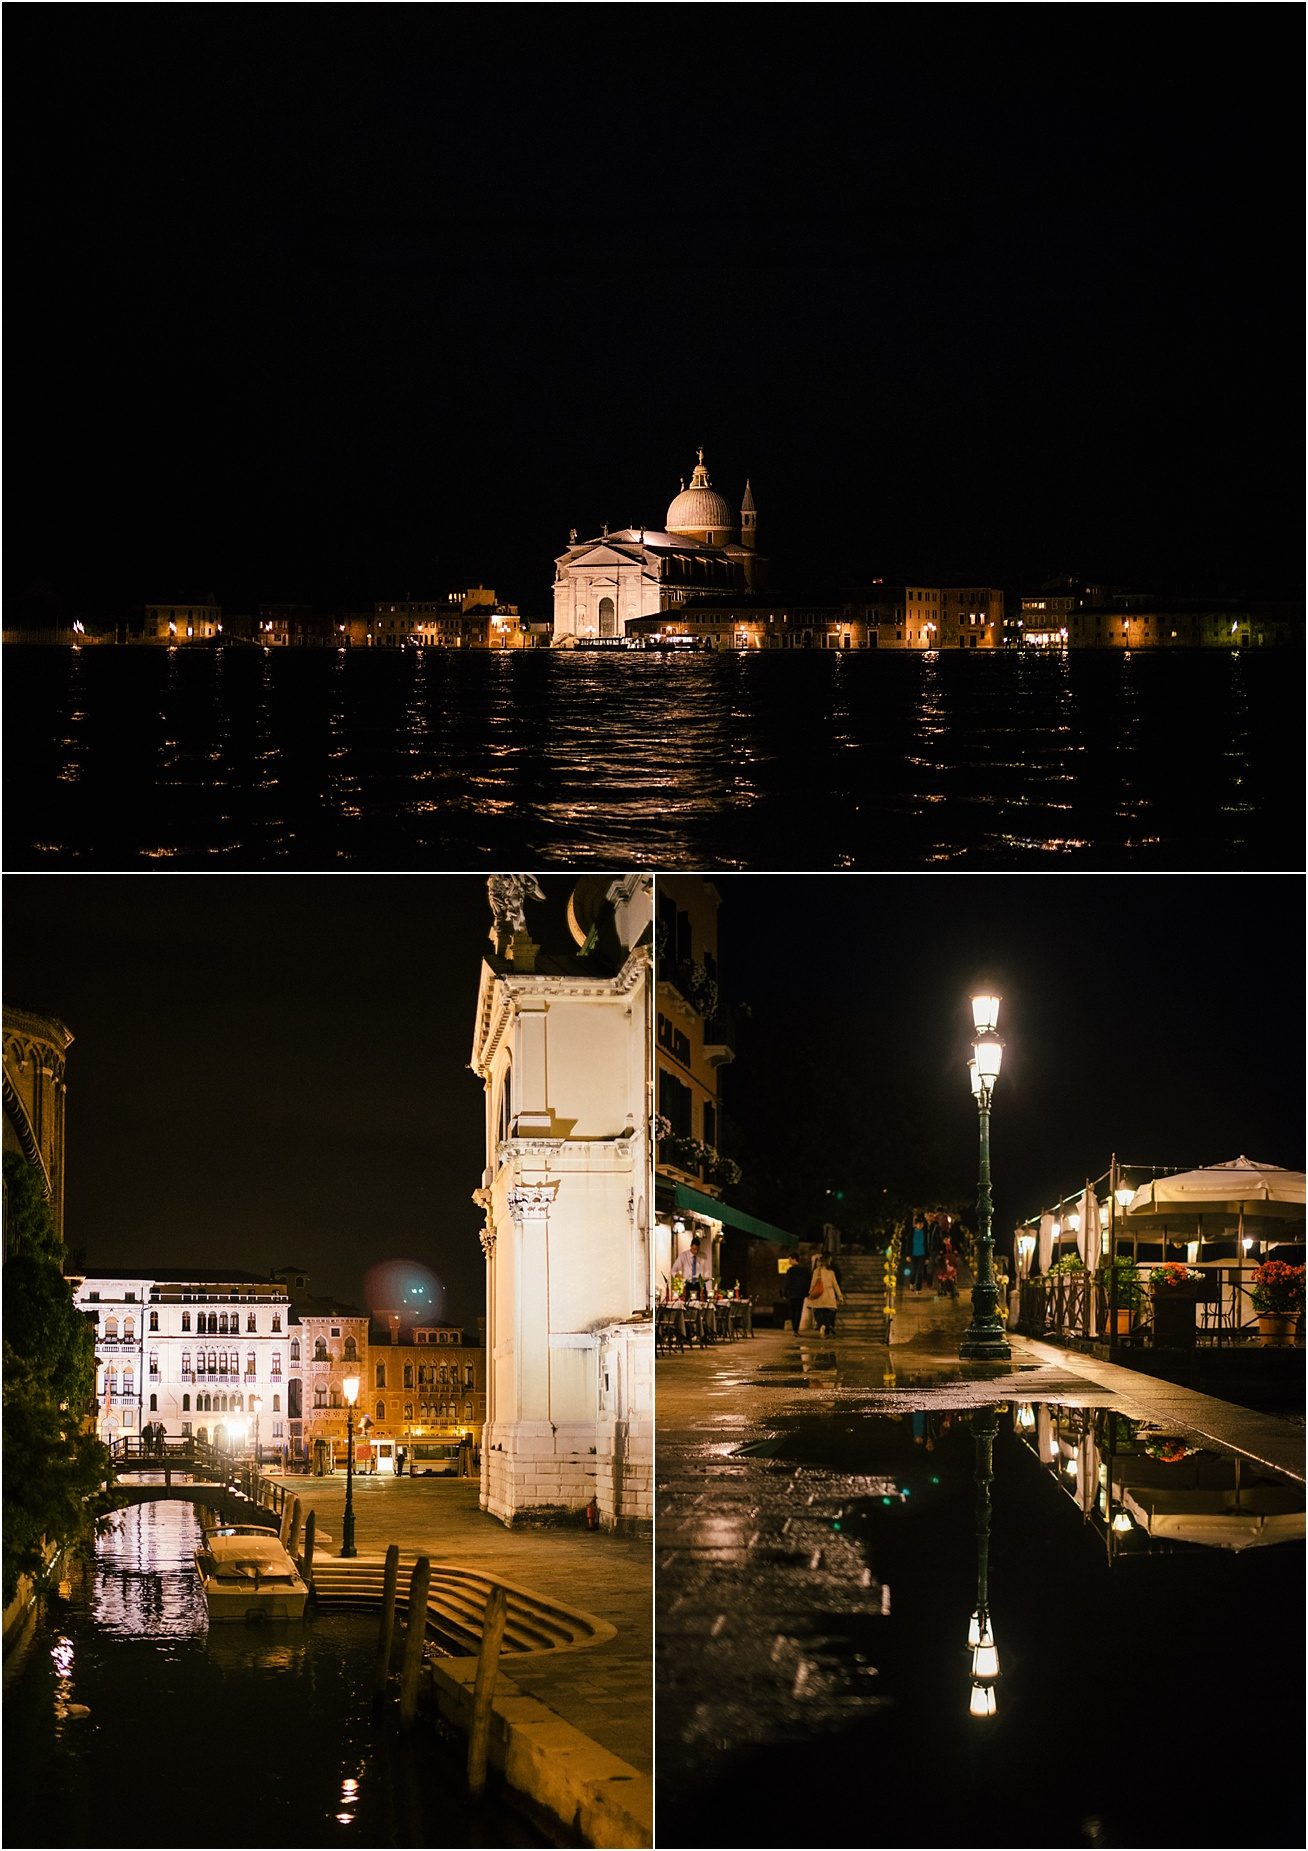 Night time in Venice, Italy